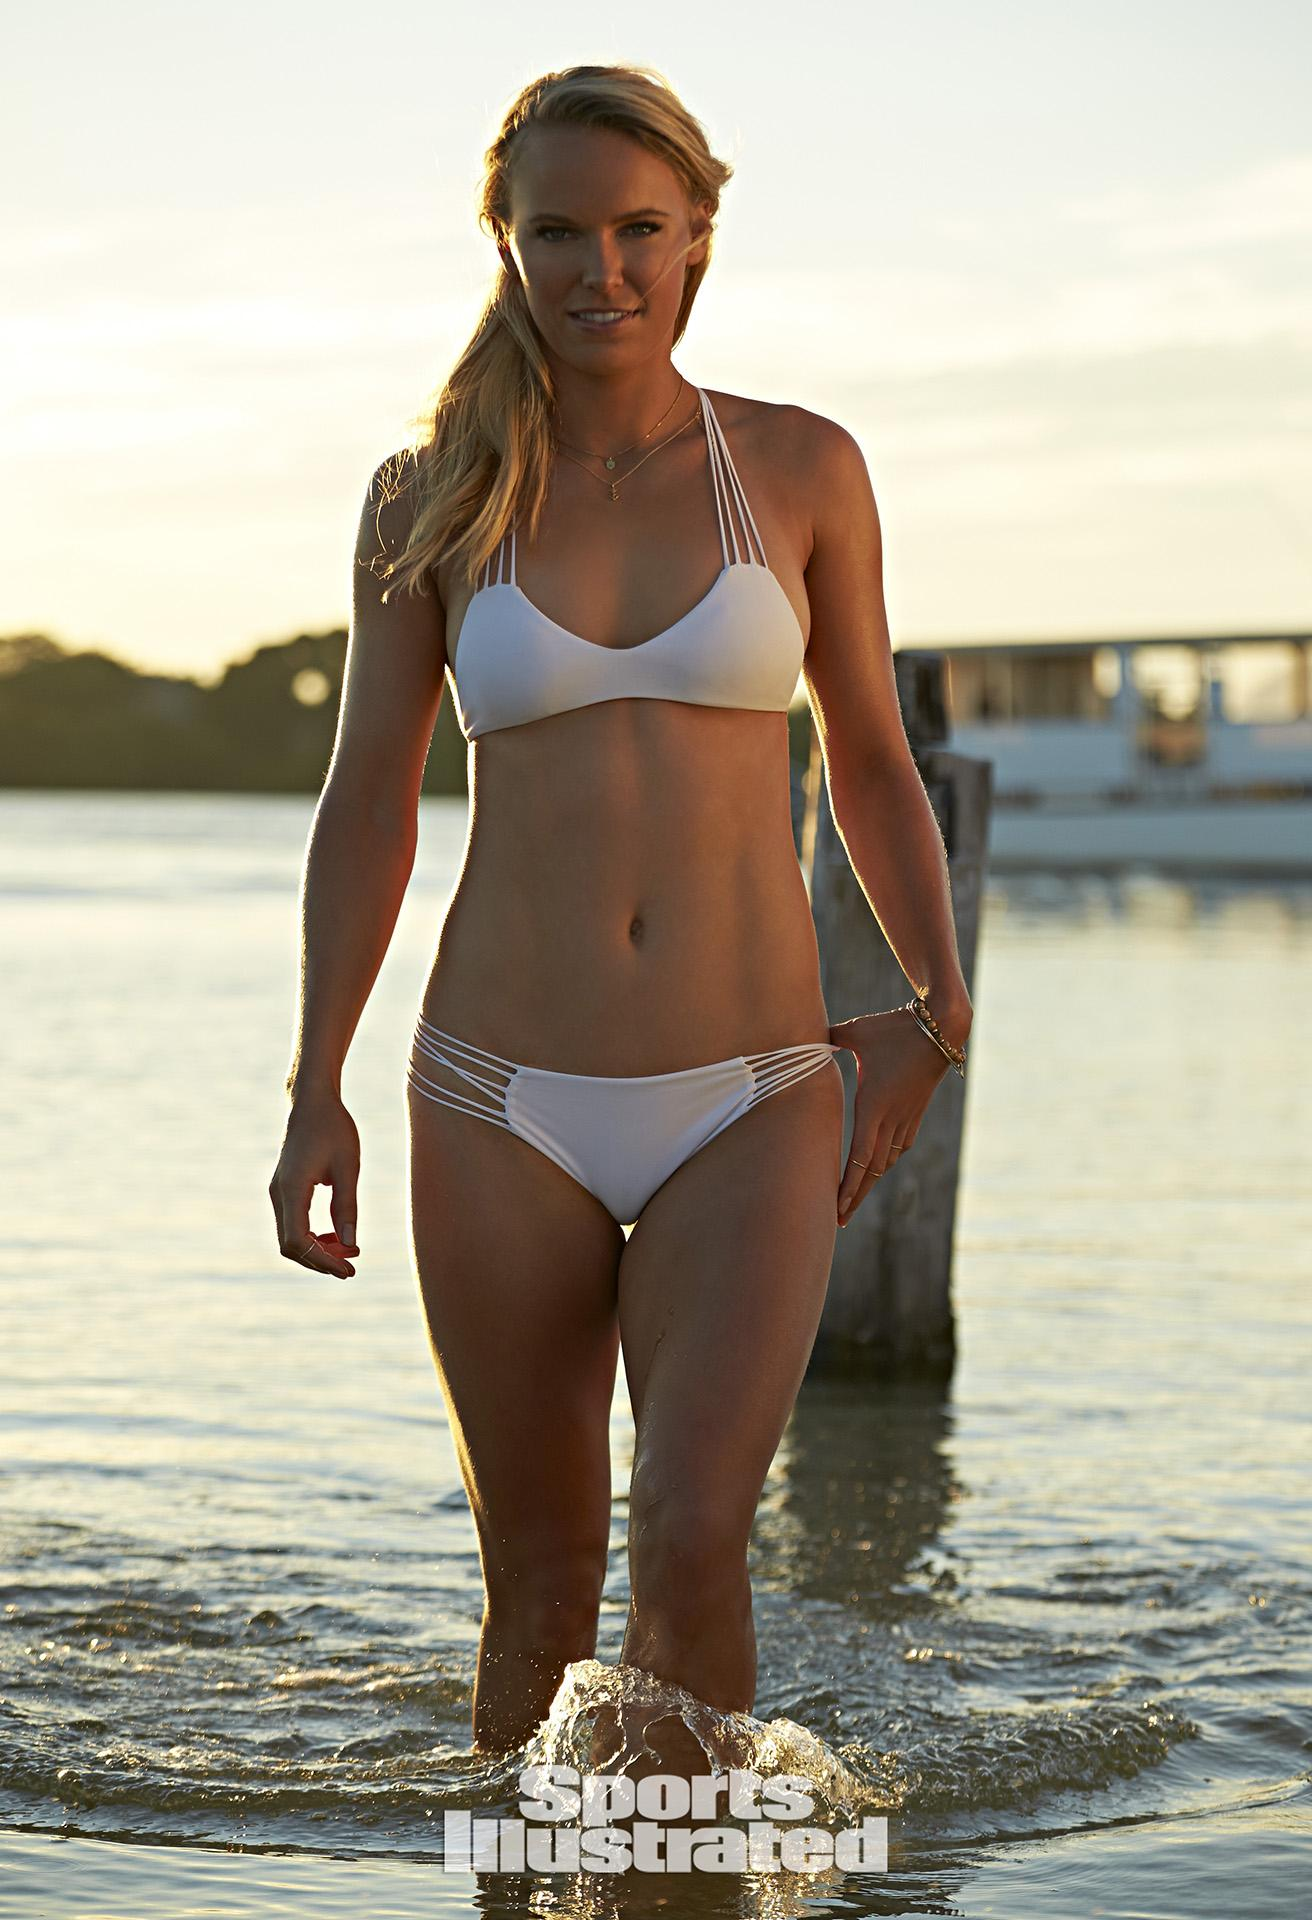 With her athletic body and Regular blond hairtype without bra (cup size 32C) on the beach in bikini